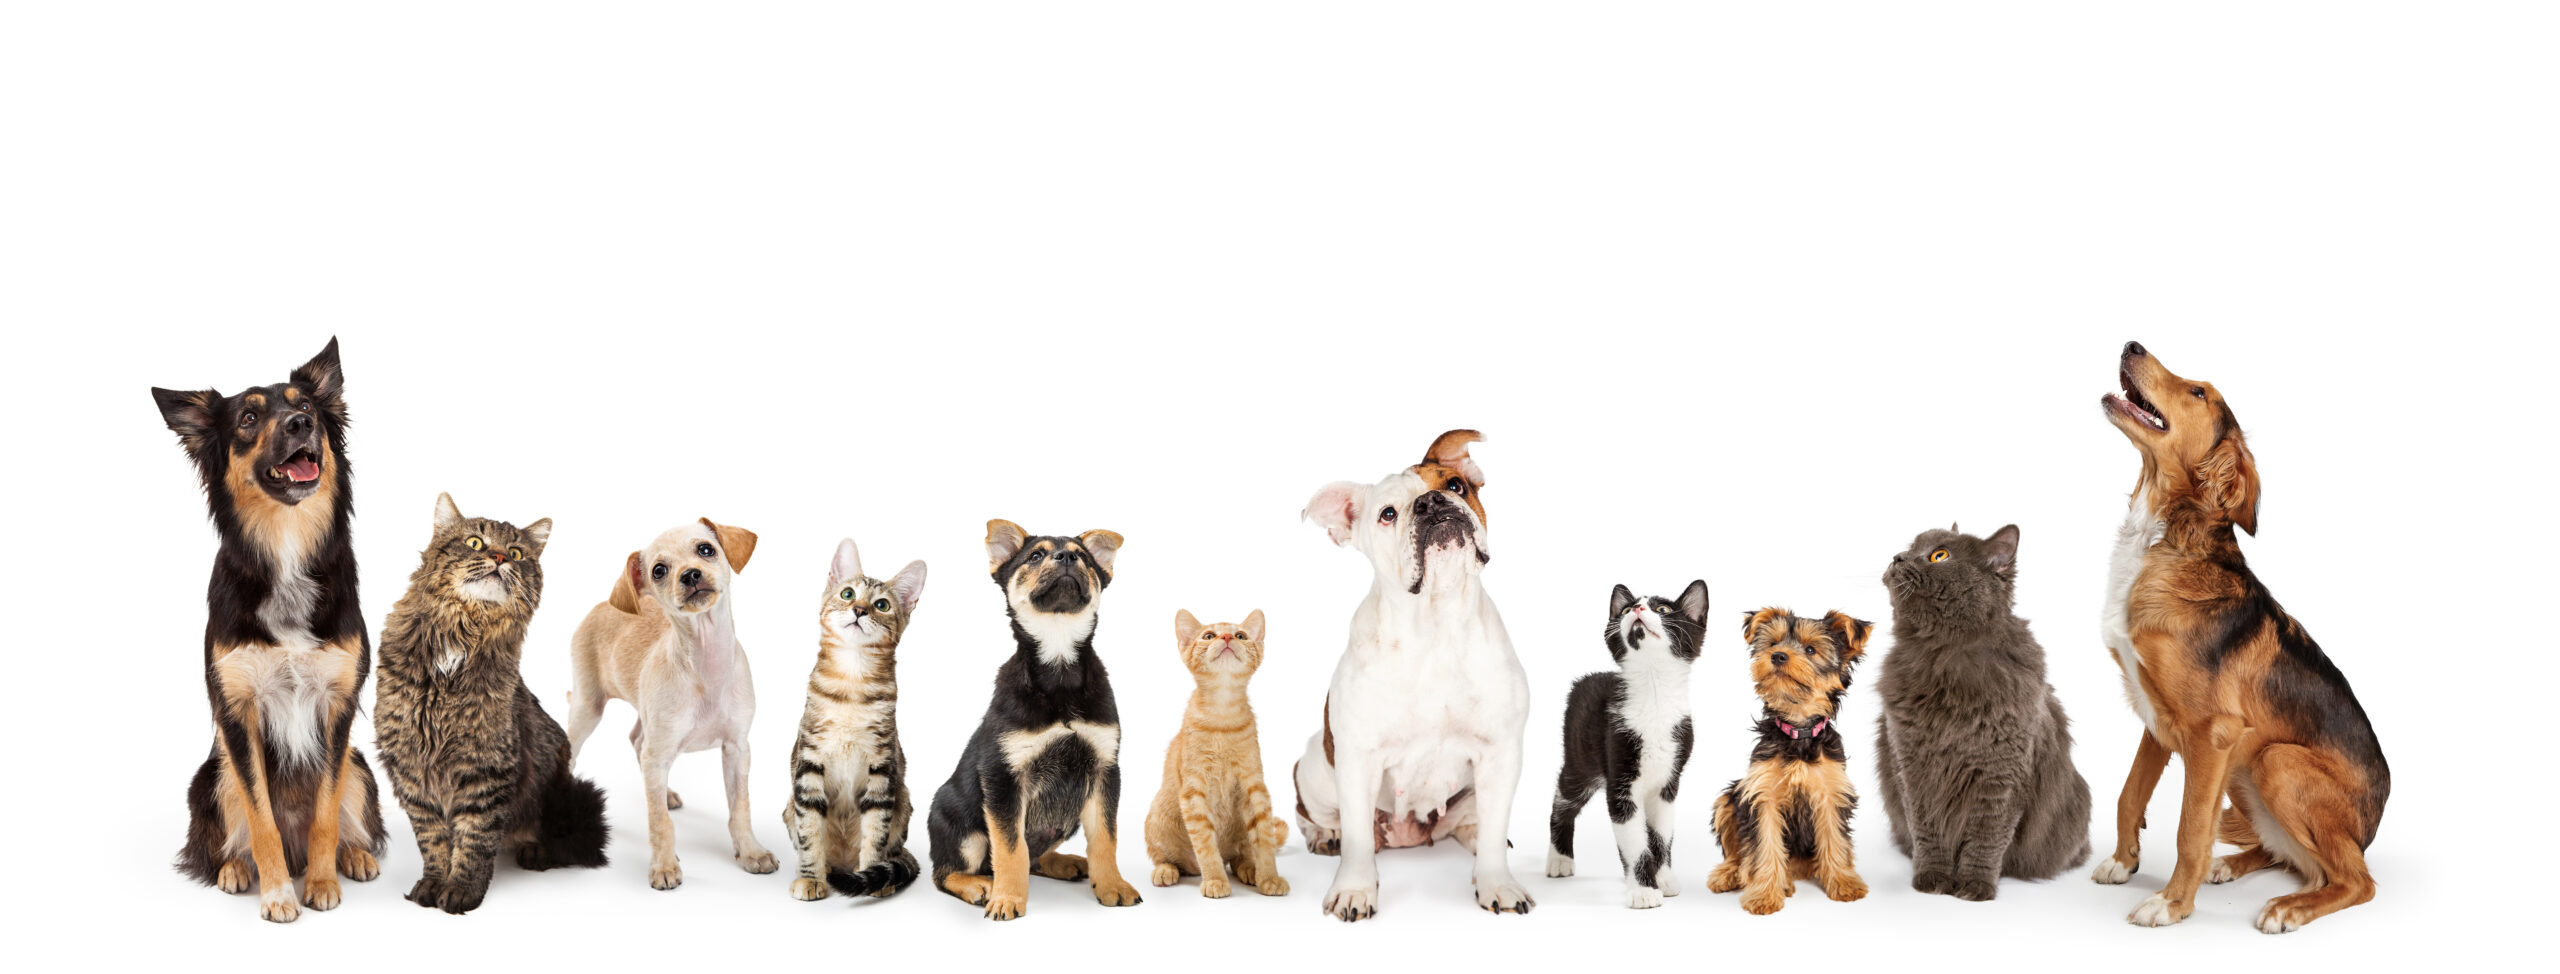 Dogs-Cats_WEM-Automation